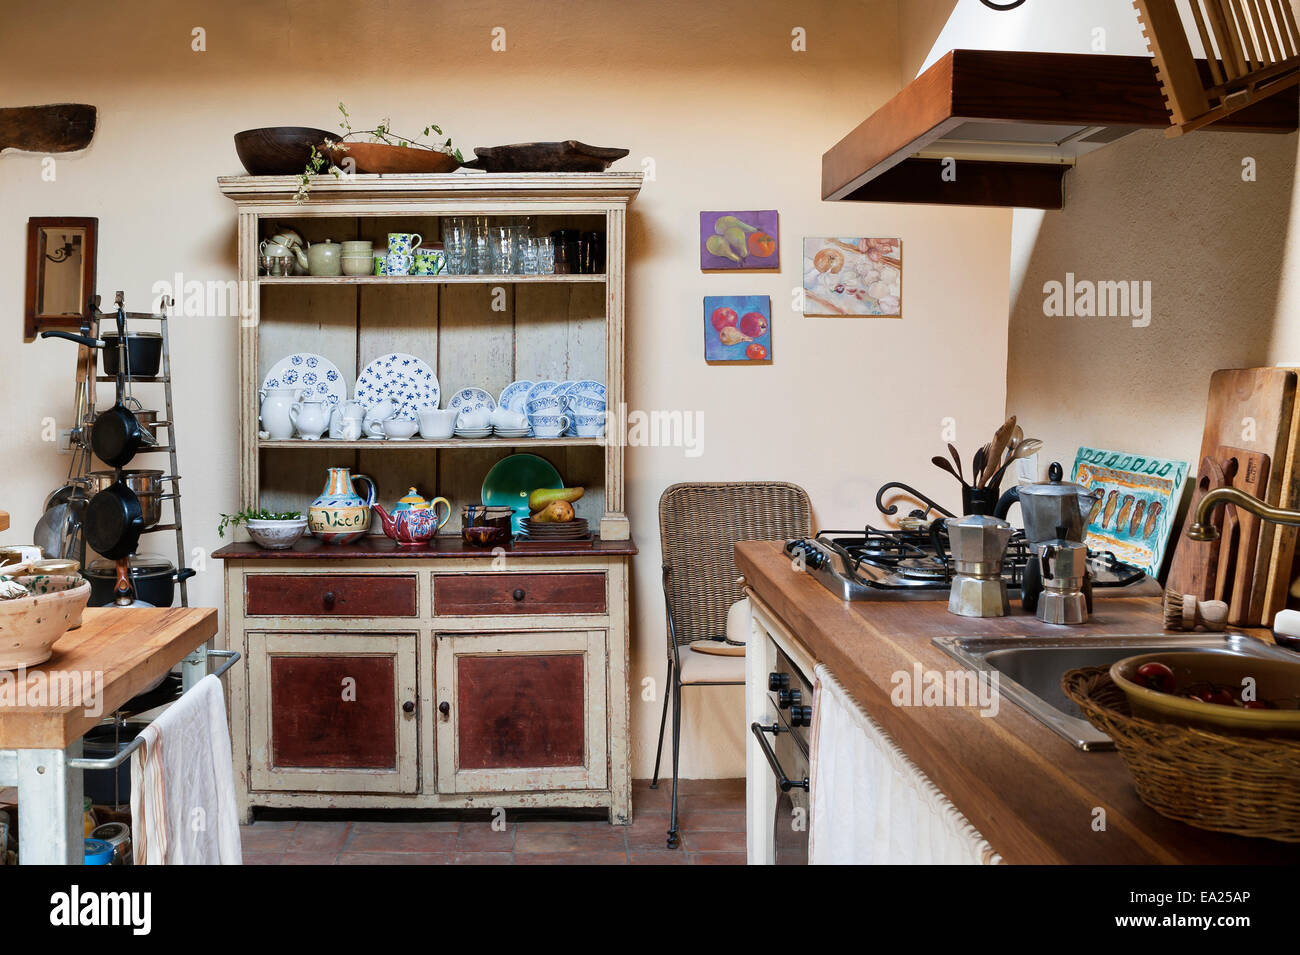 Farmhouse style dresser in rustic country kitchen with decorative crockery and wooden work surfaces Stock Photo